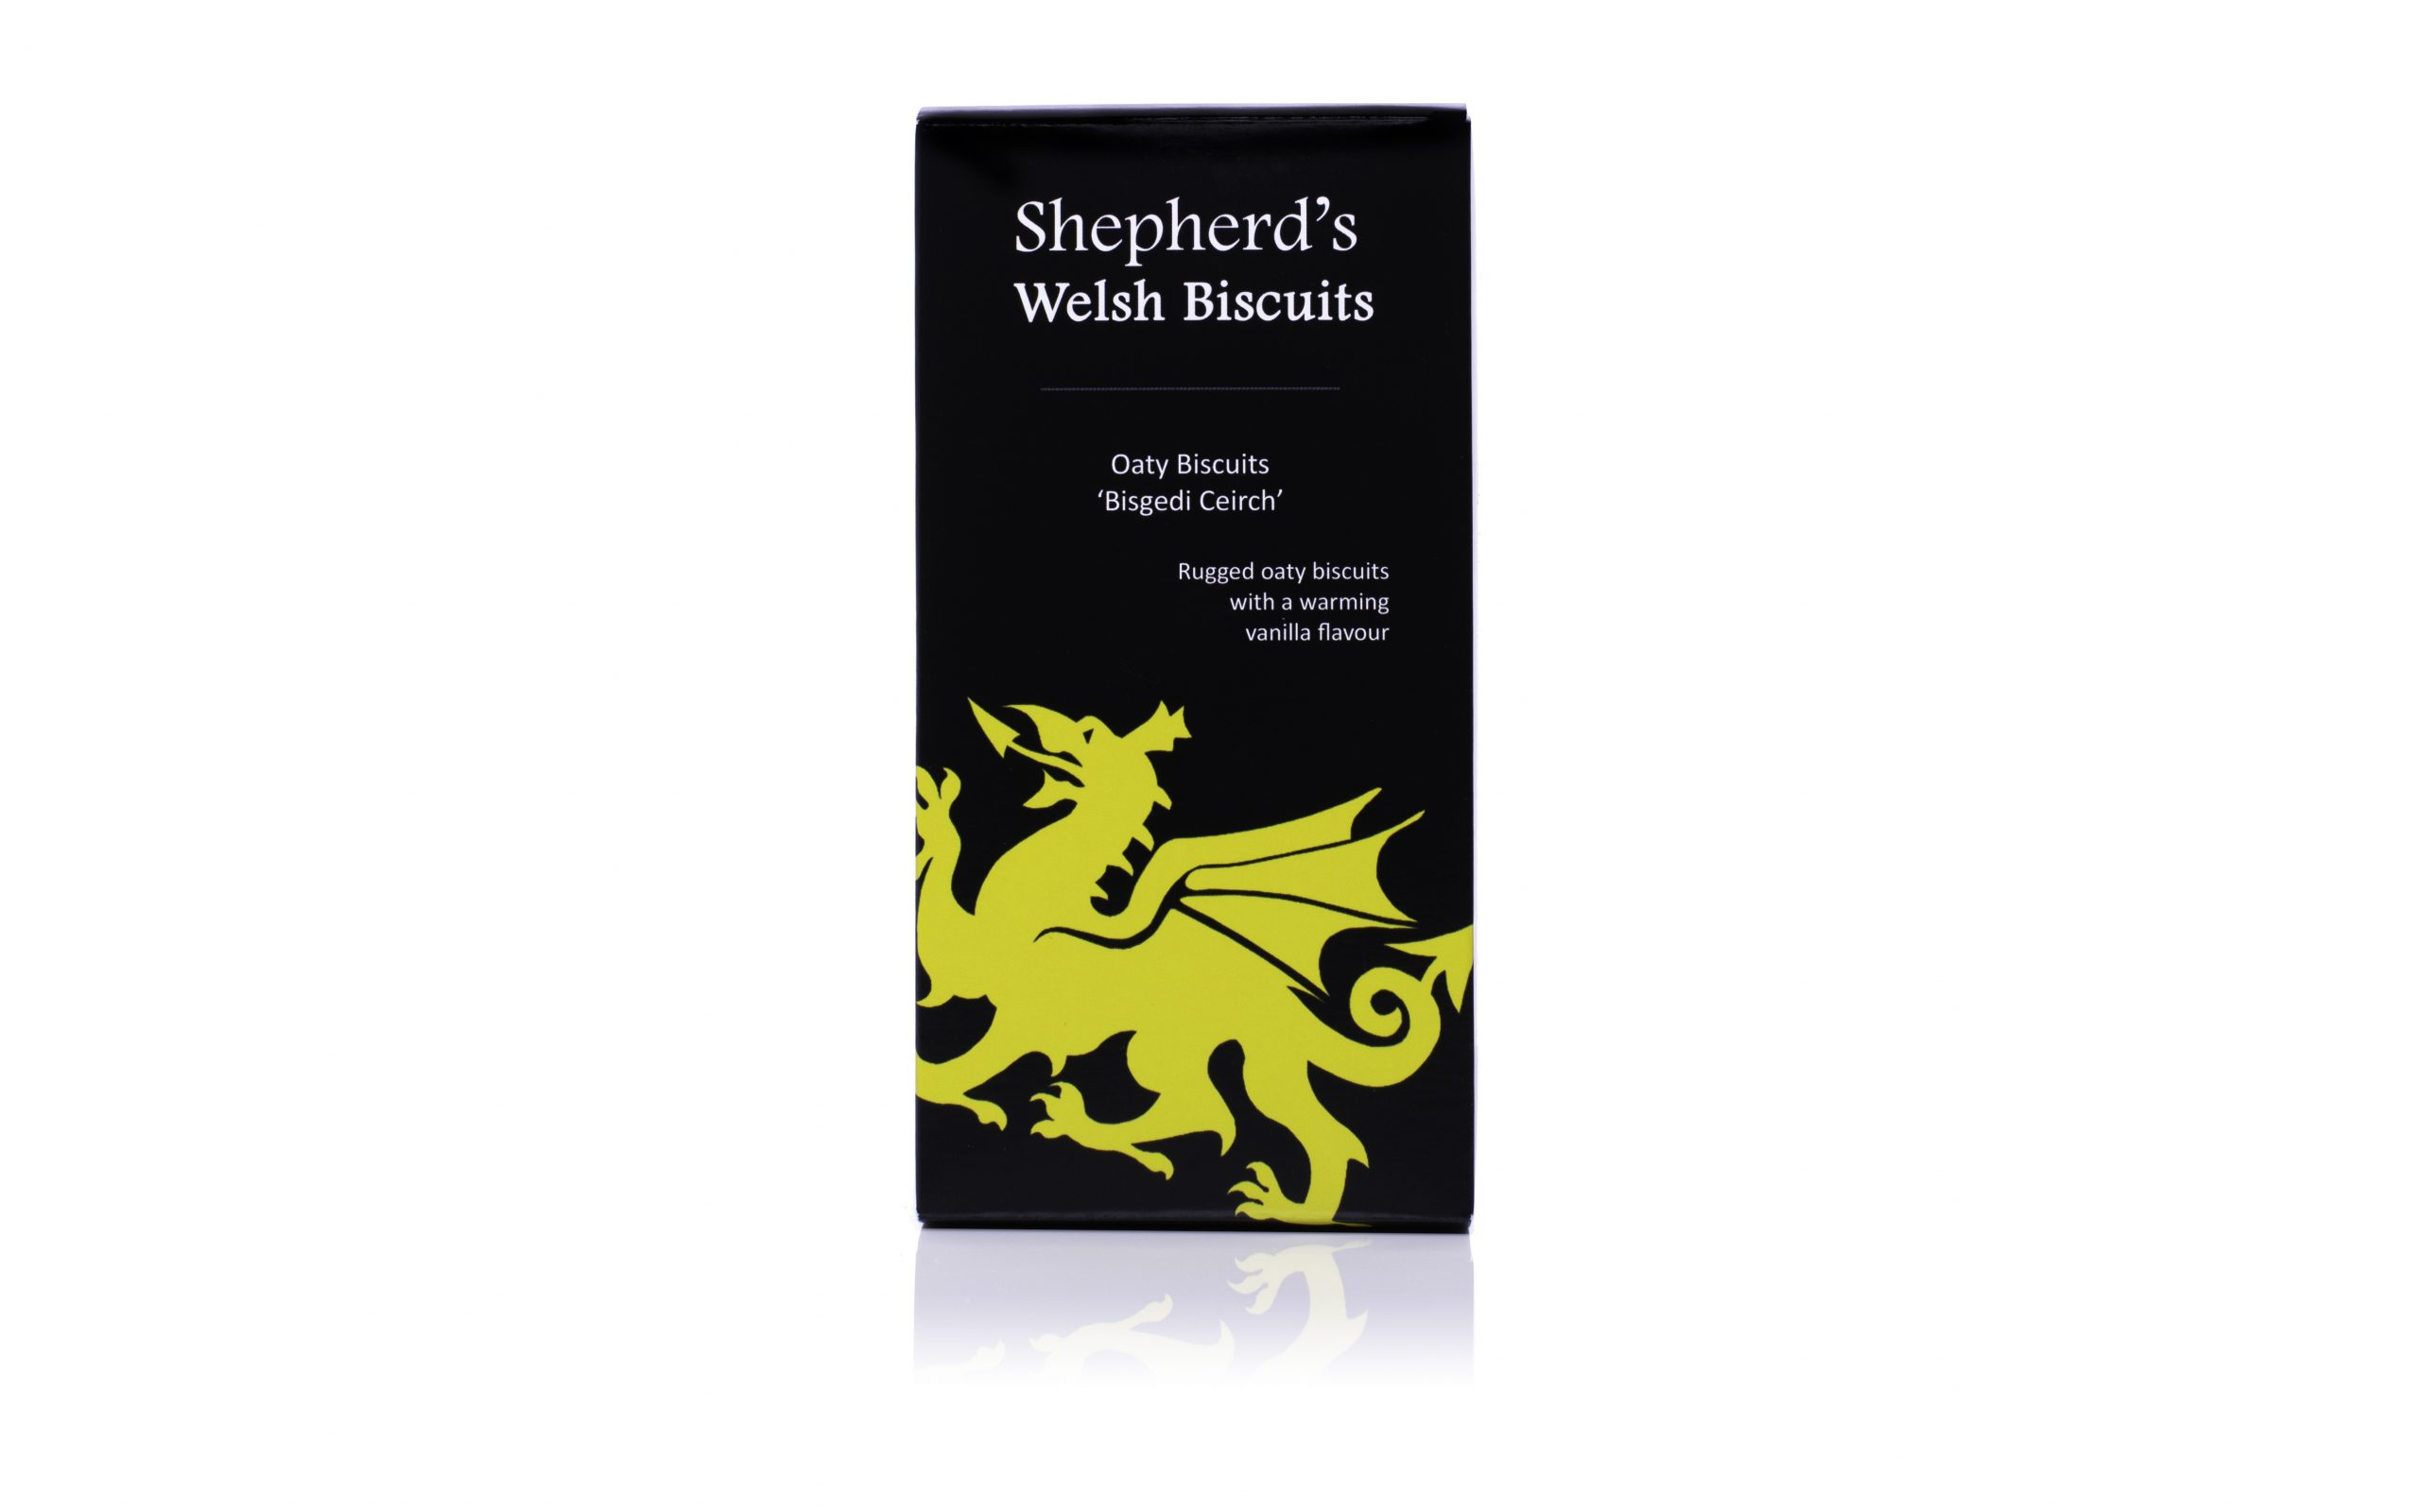 Shepherds Welsh Biscuits - Oaty 165g box